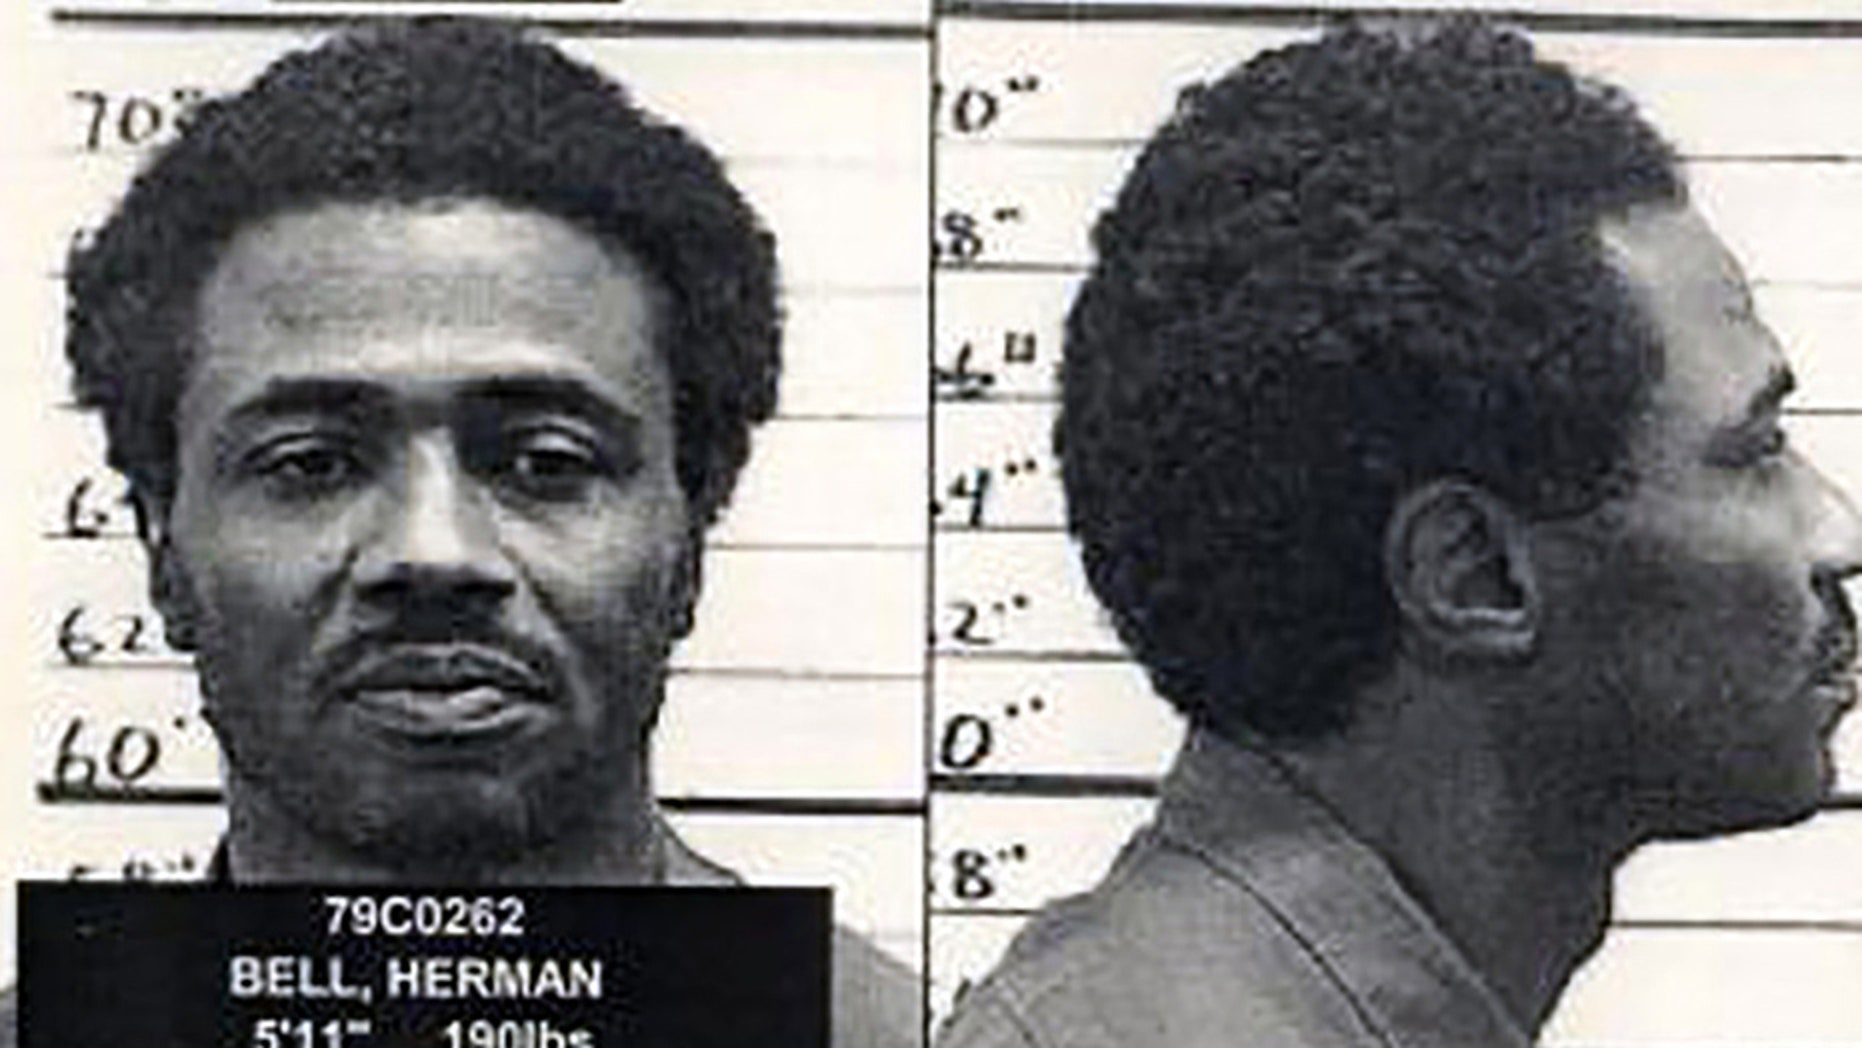 Herman Bell, who was convicted of brutally murdering two New York City police officers in 1971, had his release blocked.